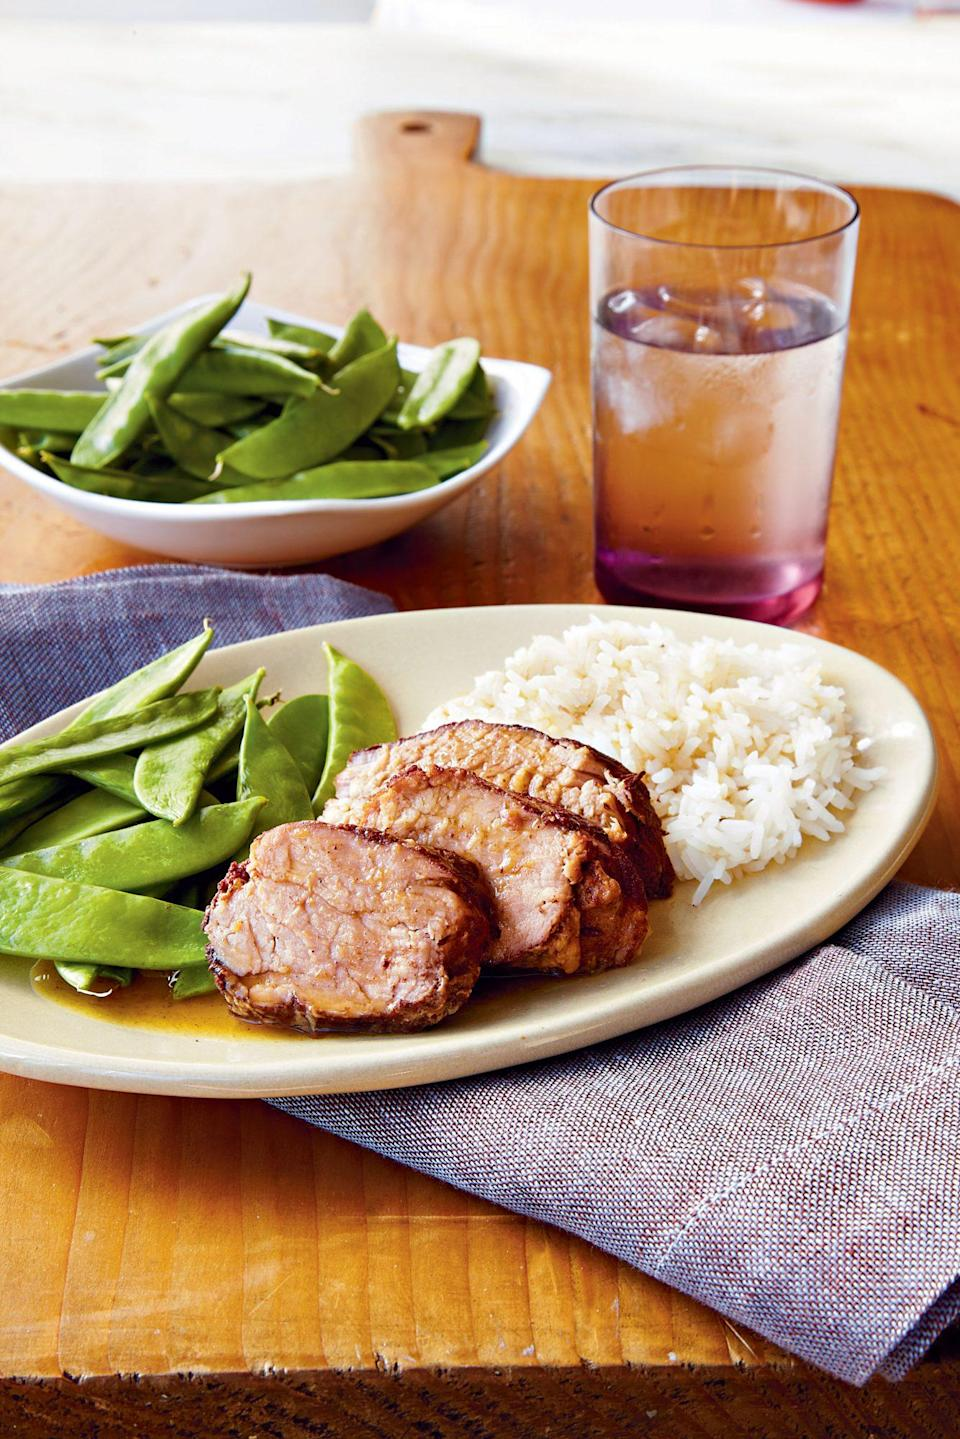 """<p><strong>Recipe: </strong><a href=""""https://www.southernliving.com/syndication/plum-pork-tenderloin"""" rel=""""nofollow noopener"""" target=""""_blank"""" data-ylk=""""slk:Plum Pork Tenderloin"""" class=""""link rapid-noclick-resp""""><strong>Plum Pork Tenderloin</strong></a></p> <p>It would be a tragedy if even a drop of the plum sauce went to waste. We recommend serving with jasmine rice to soak it all up. </p>"""